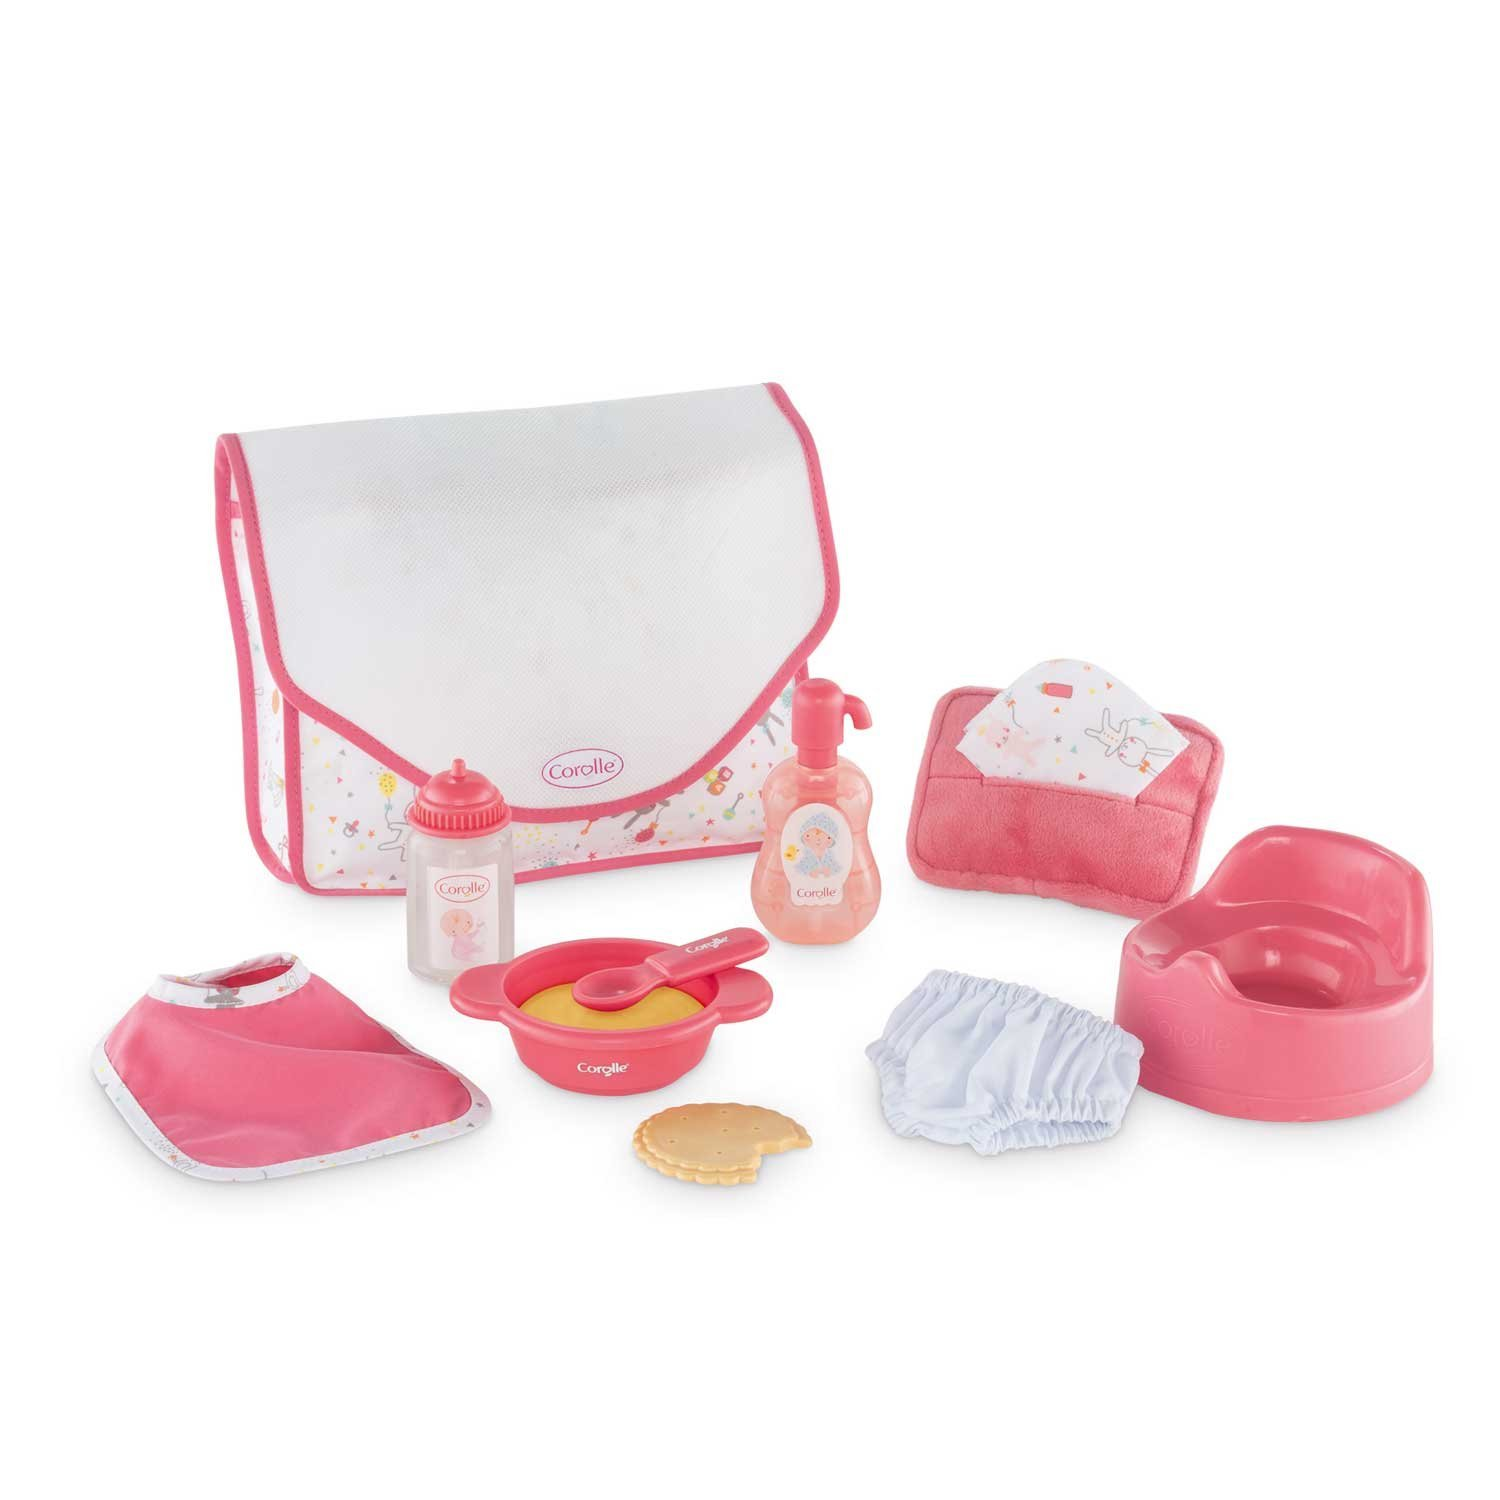 Mon Premier Large Accessories Set, Everything little ones need to take care of their baby doll By Corolle by